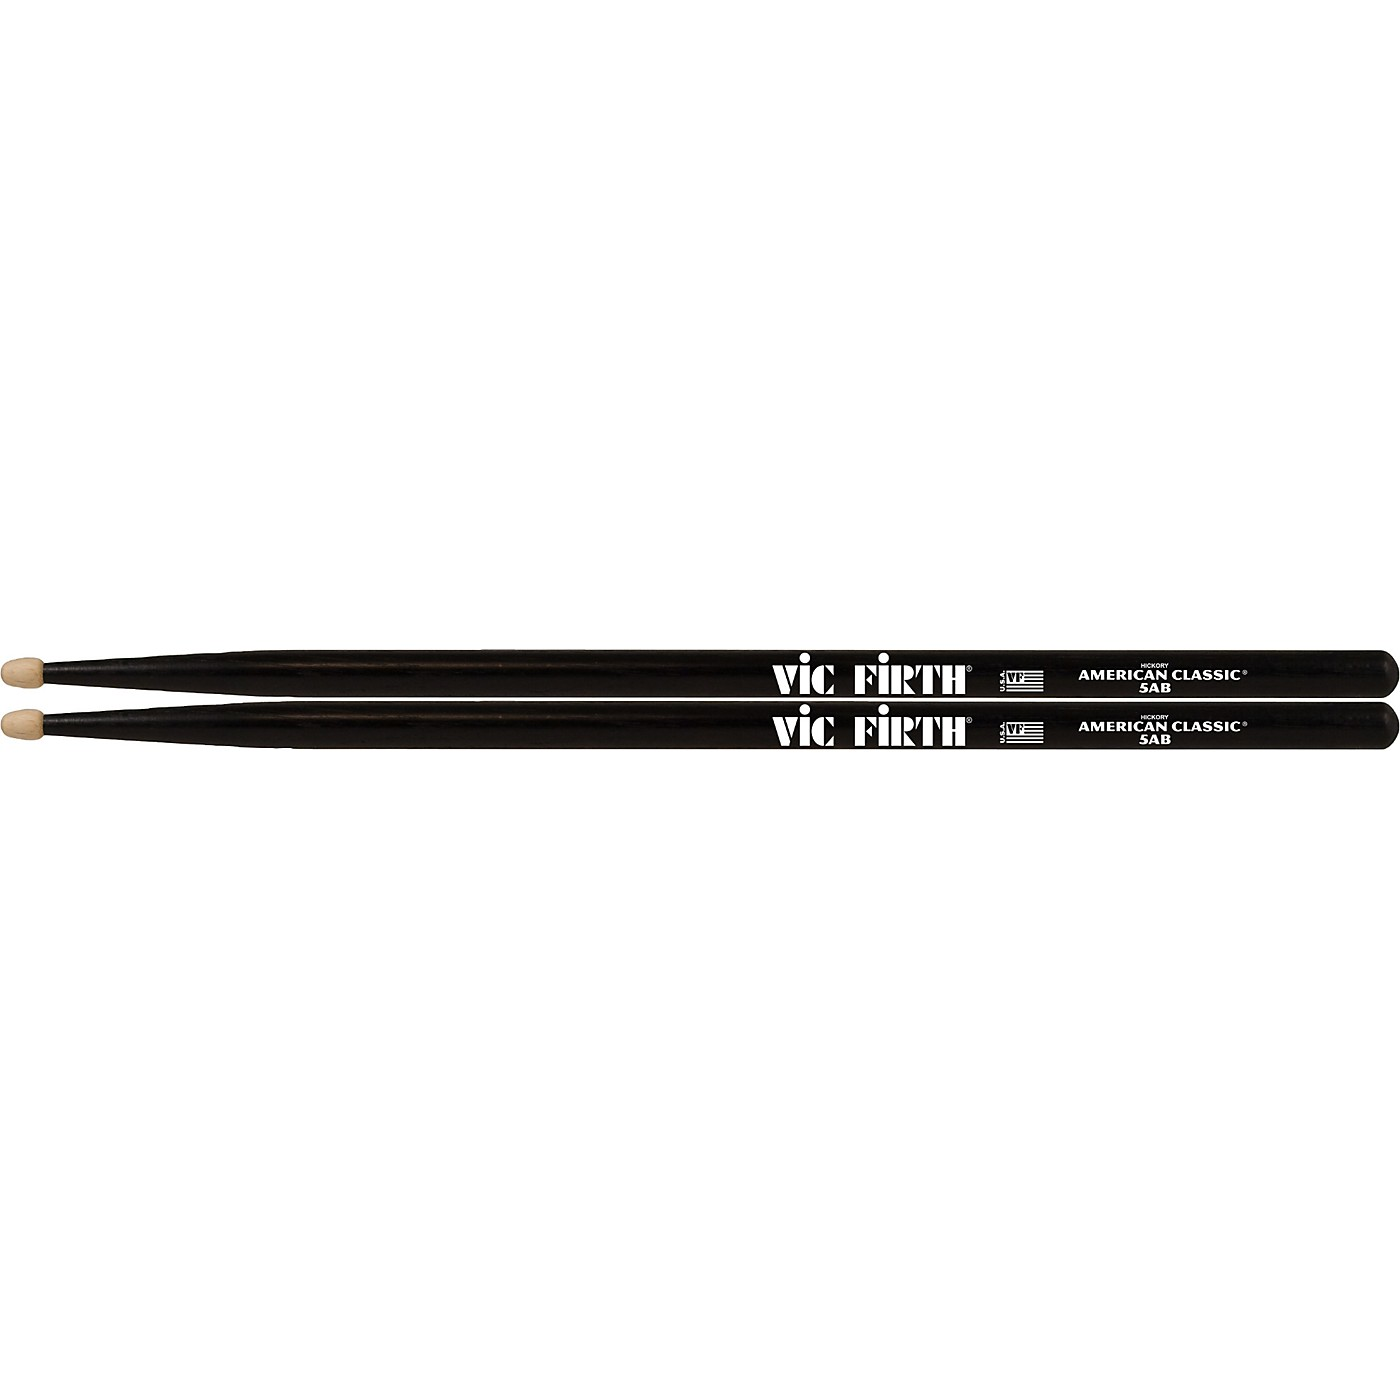 Vic Firth American Classic Drumsticks with Black Finish thumbnail